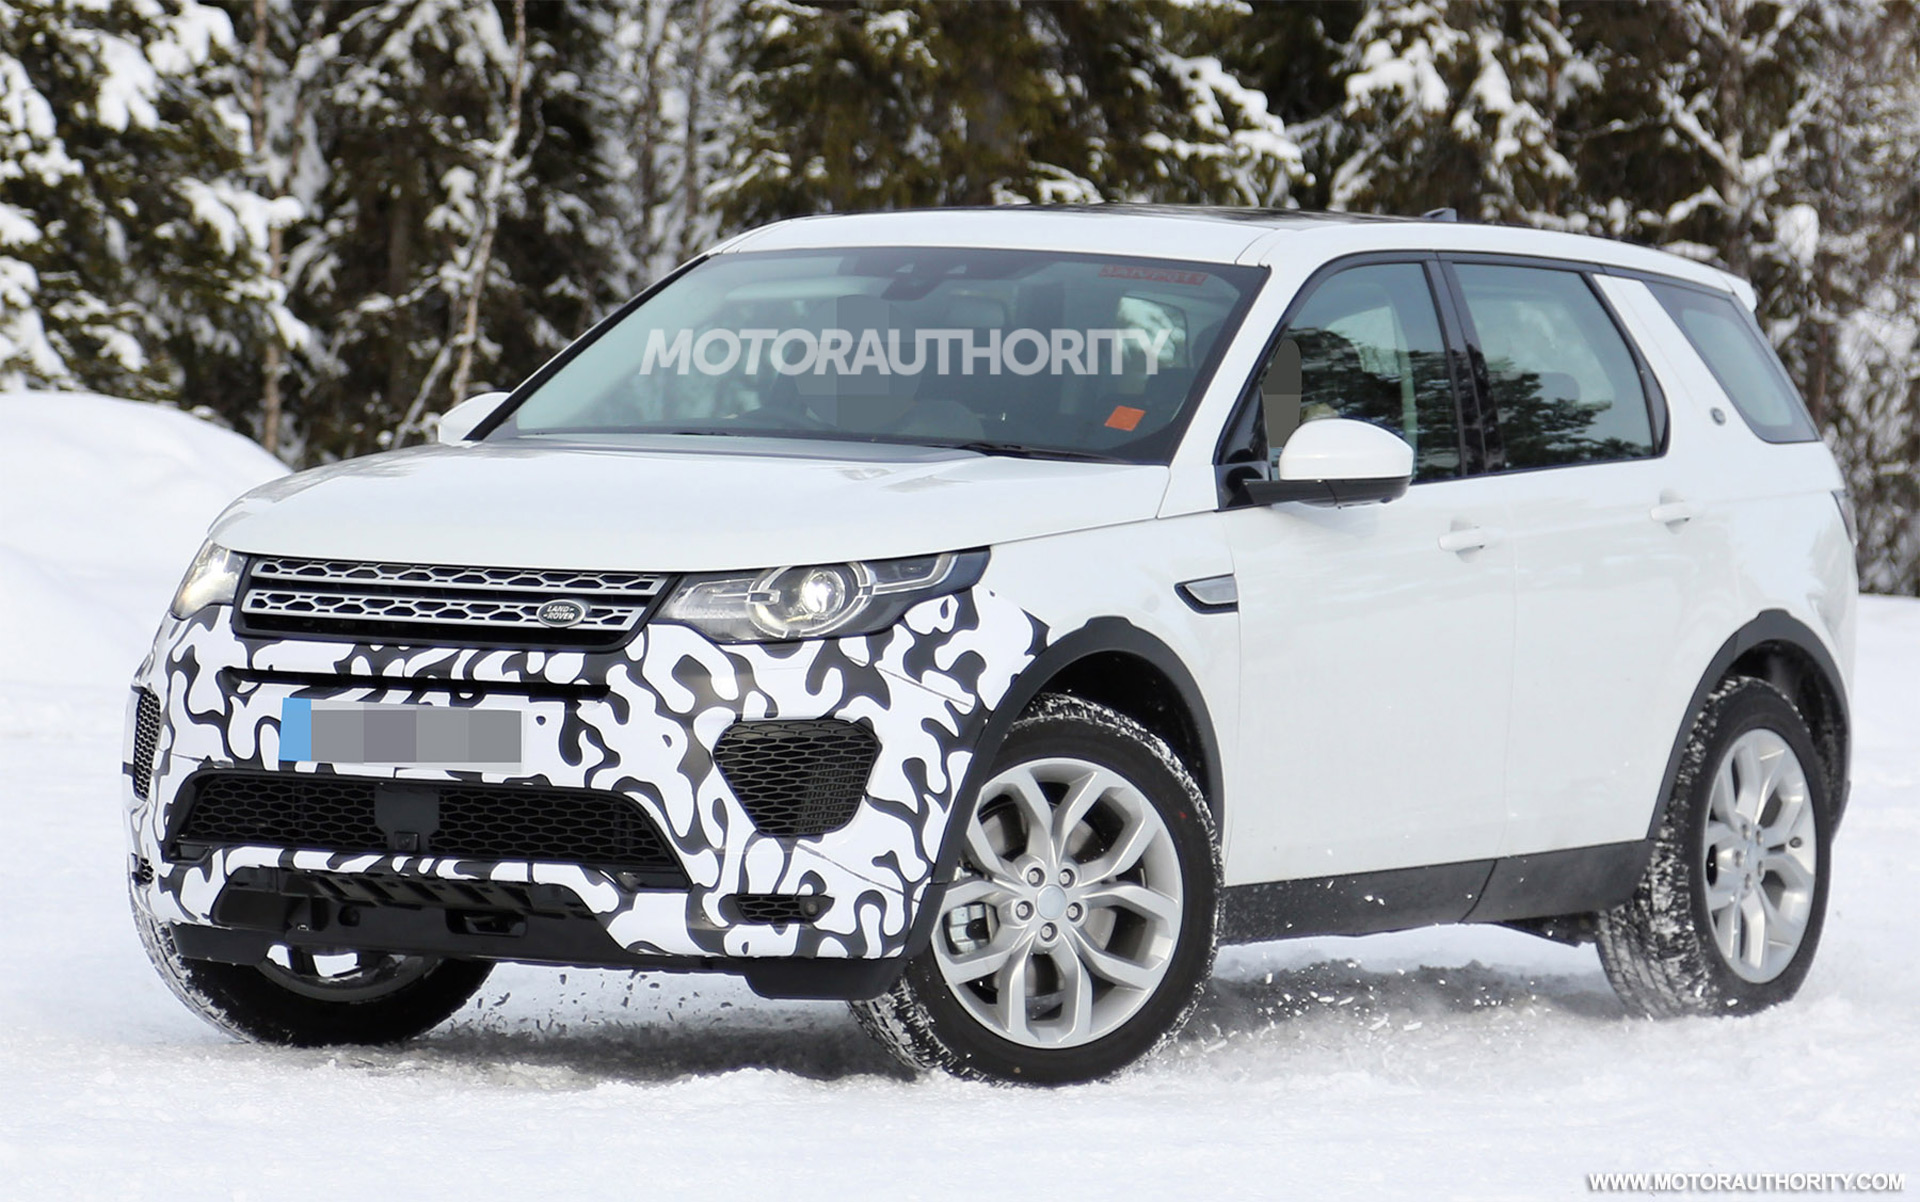 2018 Land Rover Discovery Sport performance model spy shots